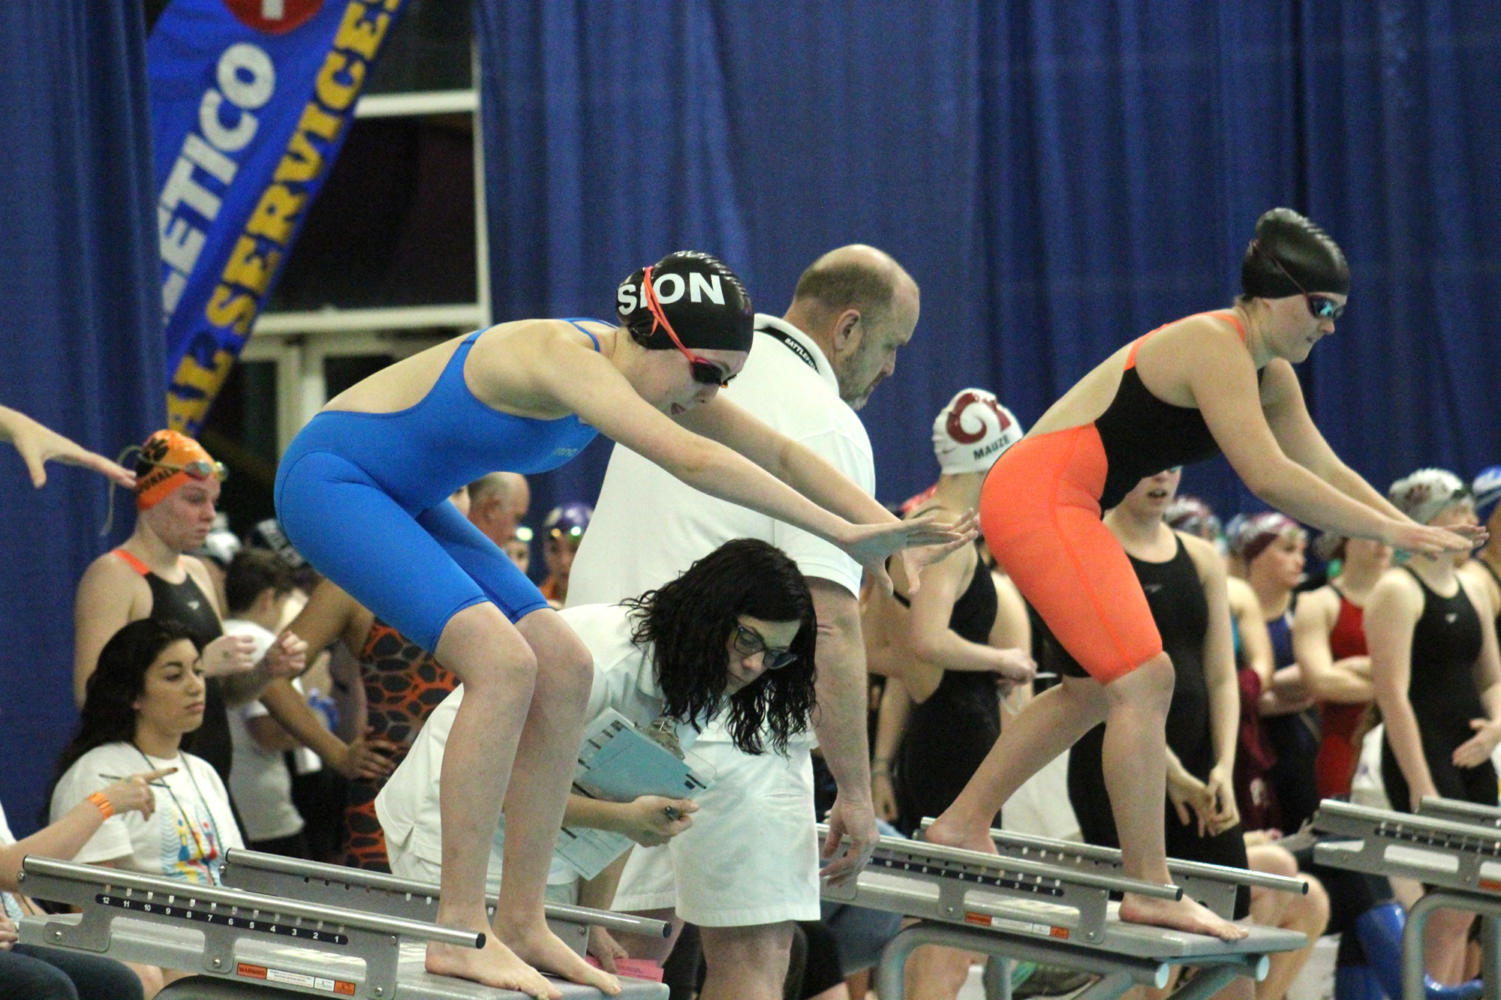 During the State competition Feb. 17, 2017, sophomore Bridget Schumm is ready to take dive off the starting block to swim in a team relay.